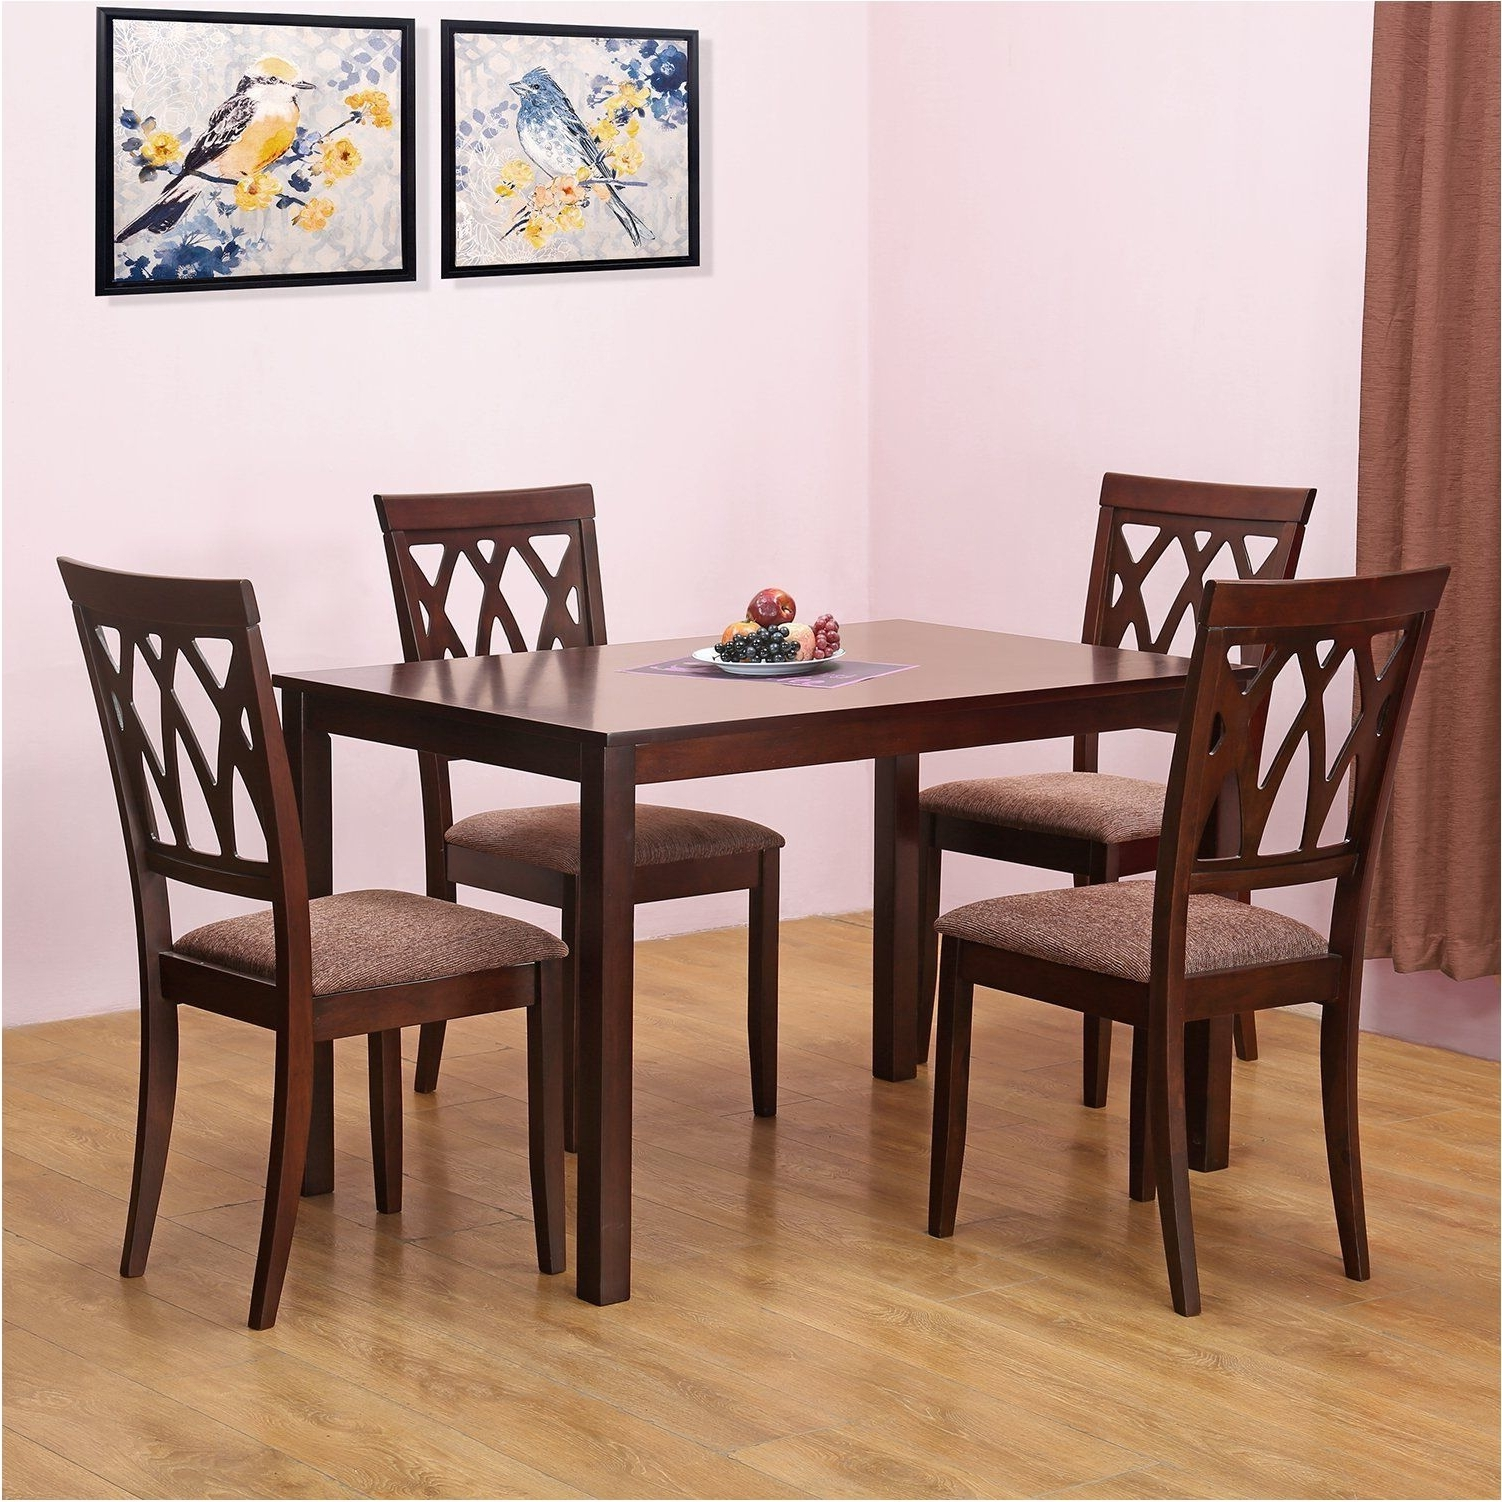 2018 Buy Dining Tables Inside Incredible Dining Tables Buy Dining Table Set 2017 Design Used (View 1 of 25)